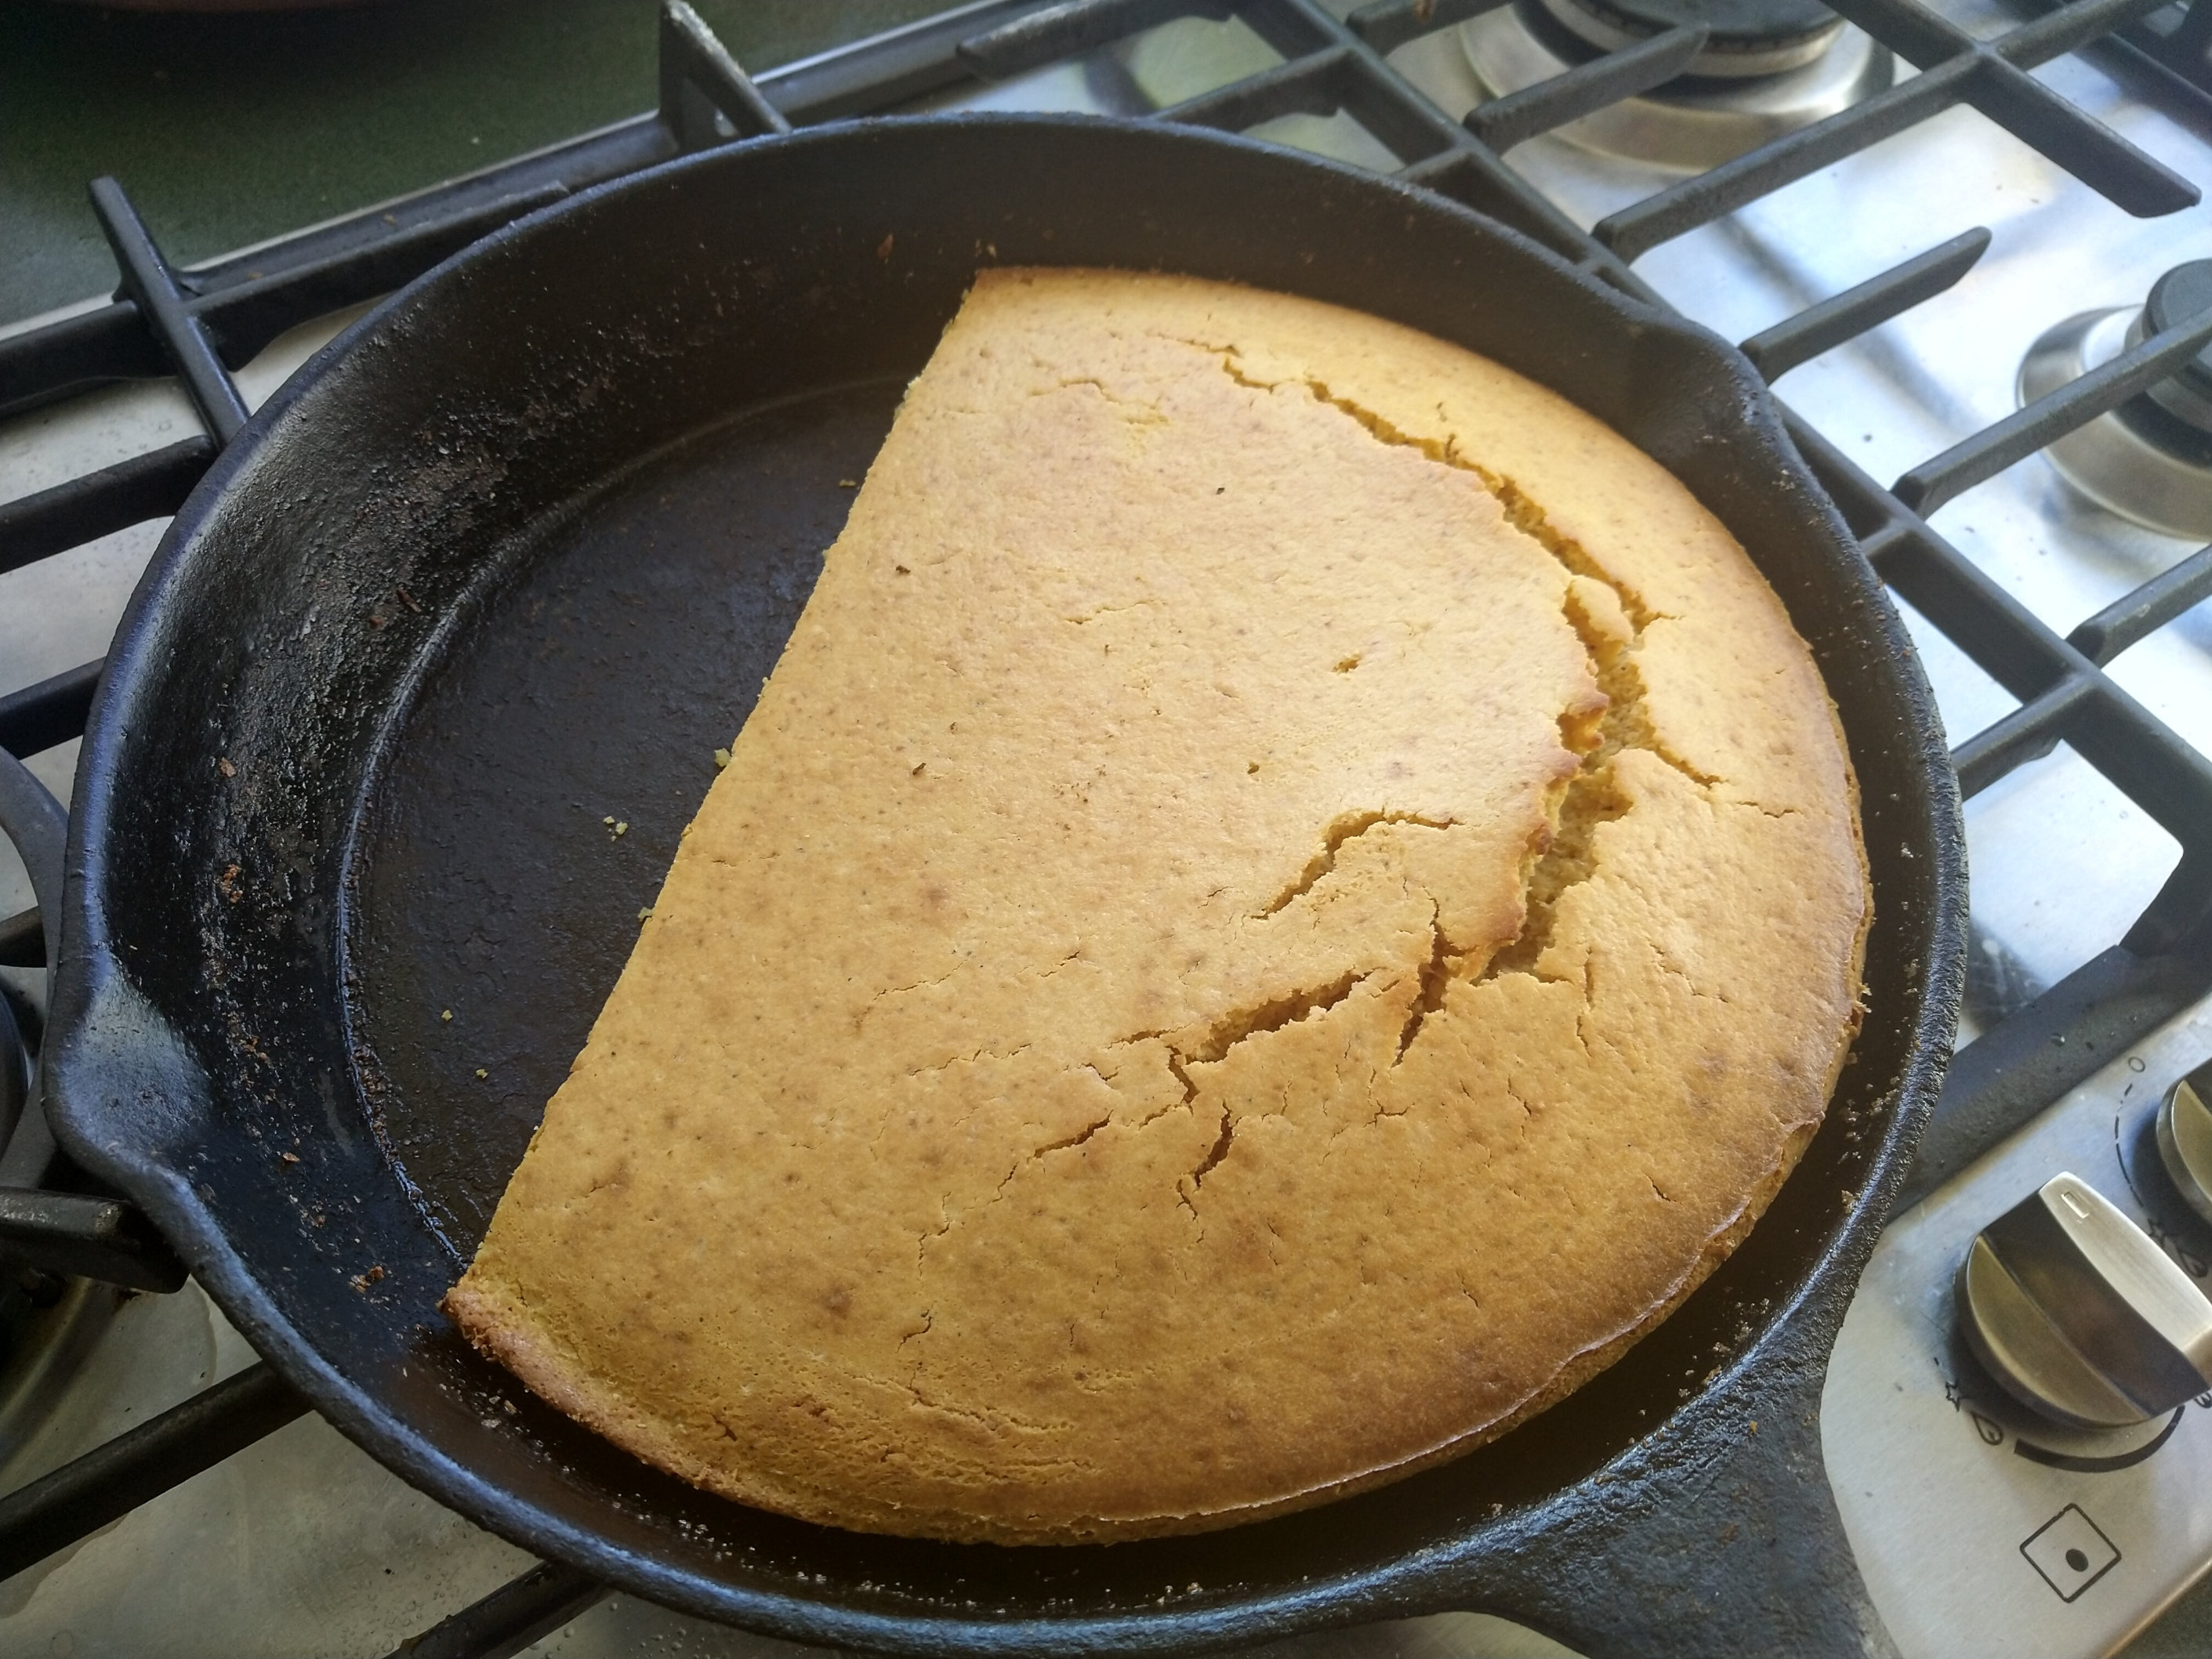 A cast-iron skillet, hot from the oven, cradling a golden-brown cornbread.